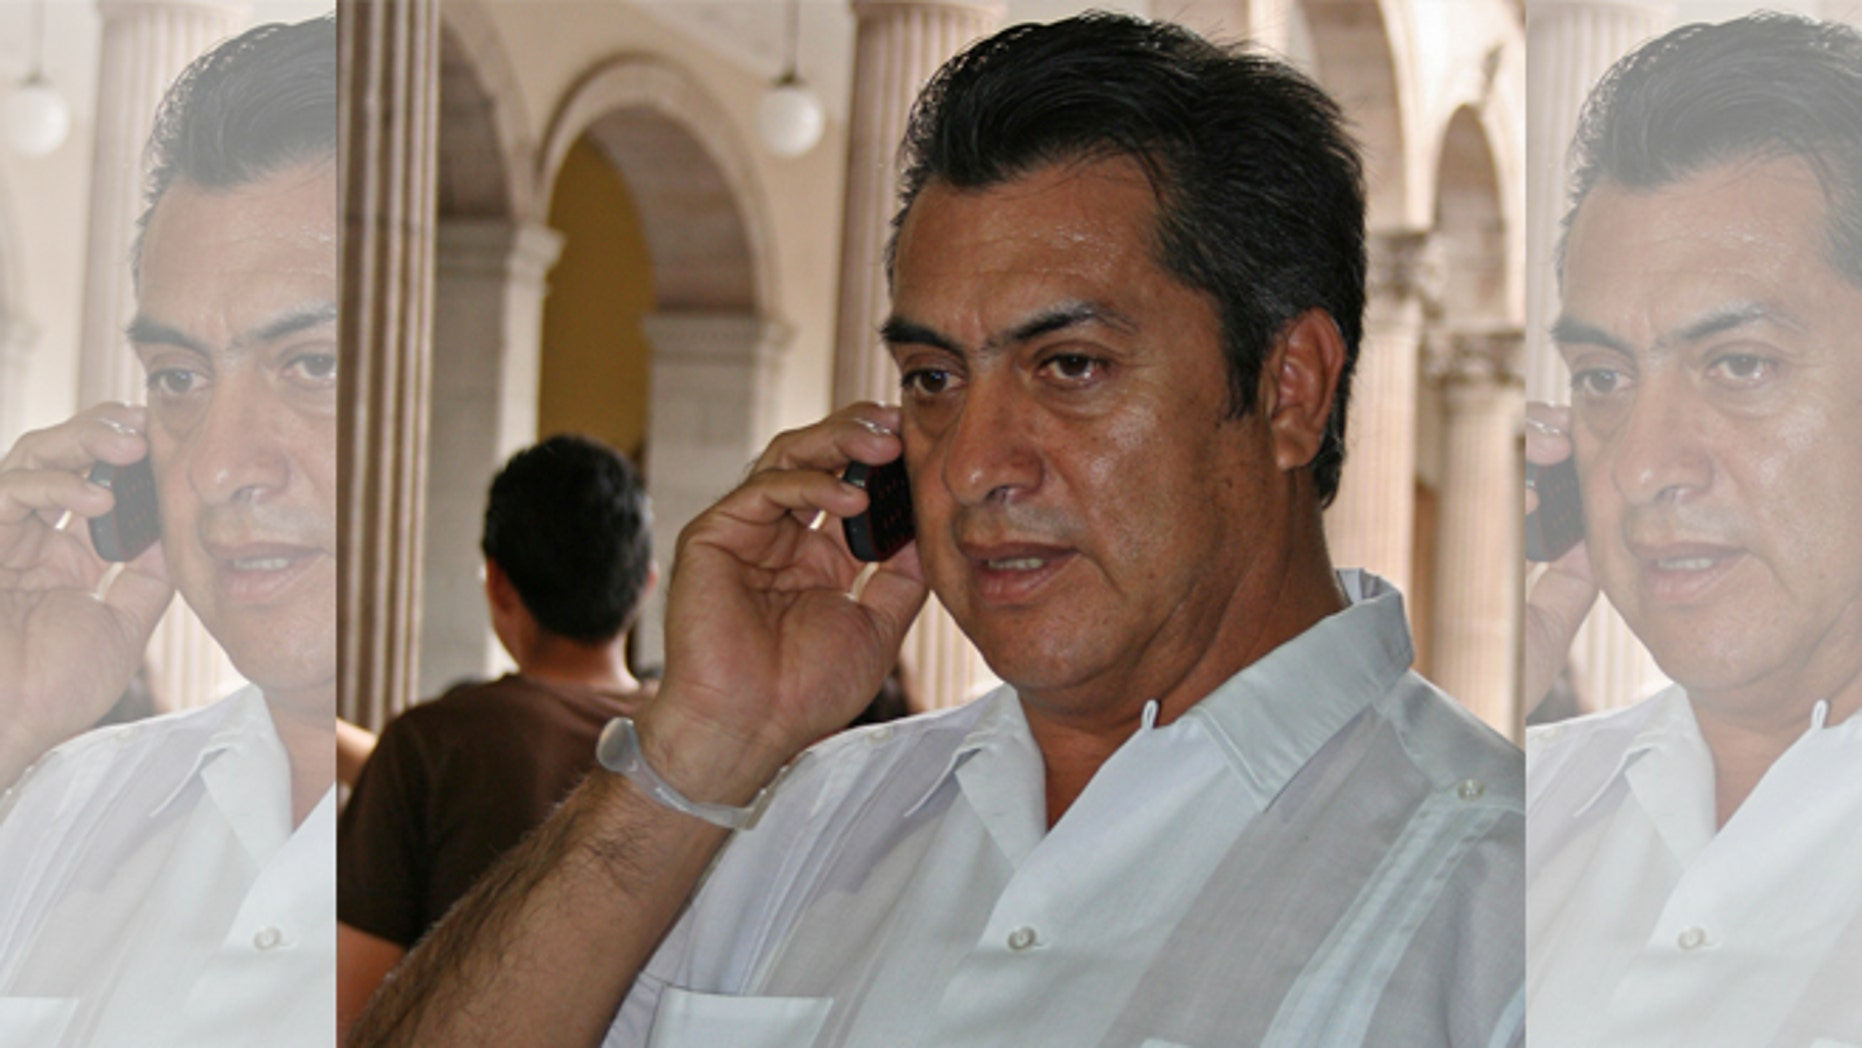 FILE - In this March 30, 2011 file photo, Jaime Rodriguez, mayor of the Mexican town Villa Garcia, speaks on a cellphone in Monterrey, Mexico, a day after he survived an assassination attempt. As mayor of a suburb of the northern industrial city of Monterrey, Rodriguez survived two assassination attempts that left his car bullet-ridden, defying, he says, the fierce Zetas cartel. Now he is trying to beat the odds in another way, running as an independent for governor of Nuevo Leon, a wealthy and strategic state bordering Texas. (AP Photo, File)